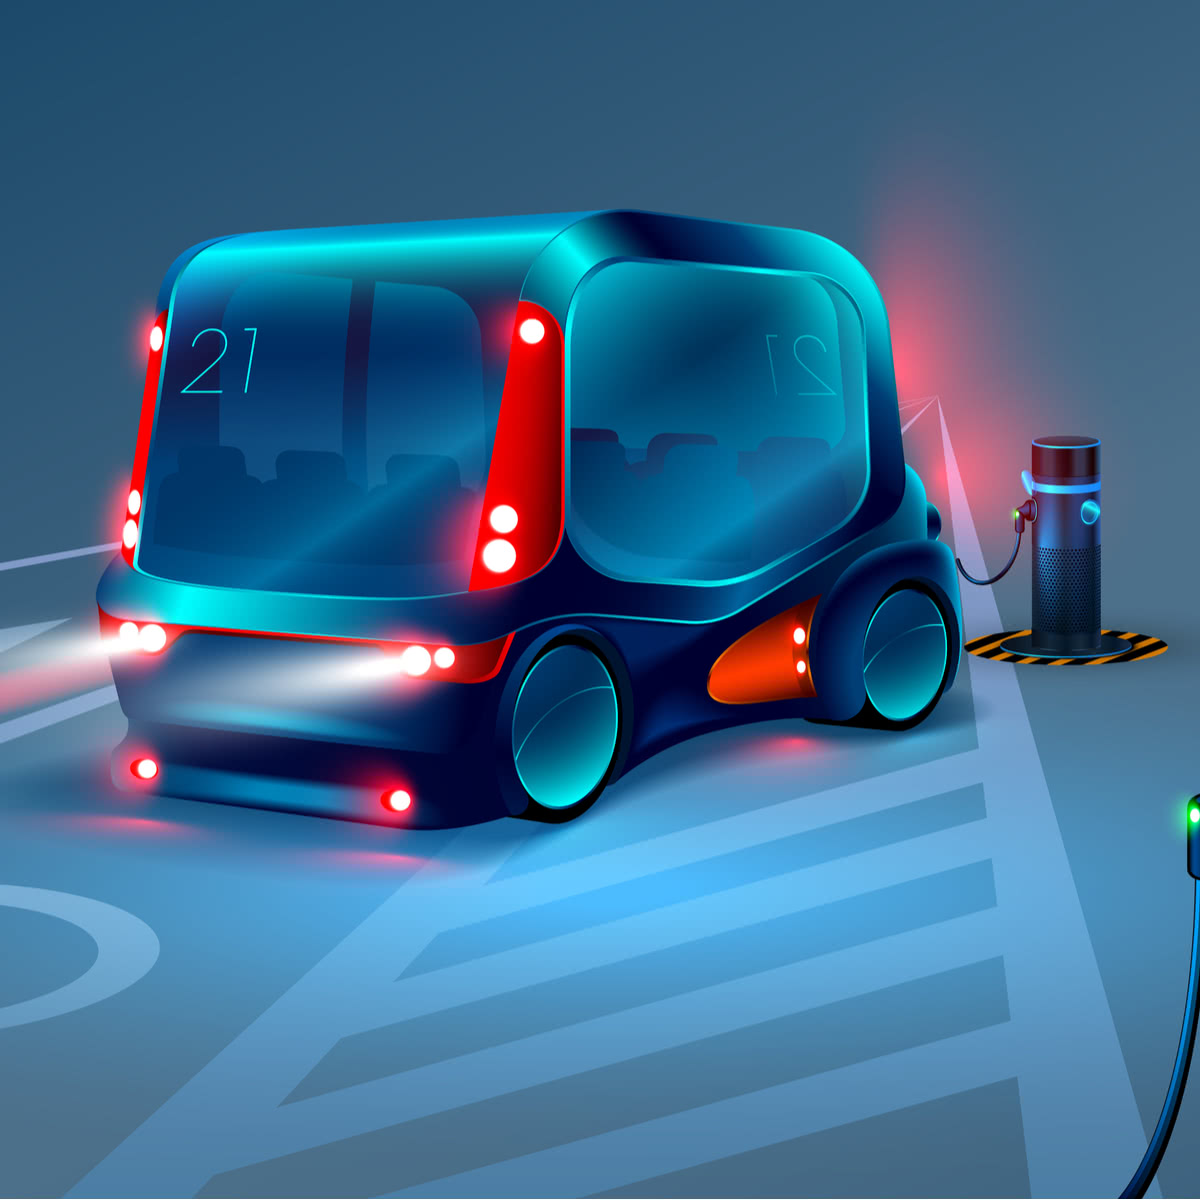 Electrification - Electric vehicle future trends to 2025 and beyond